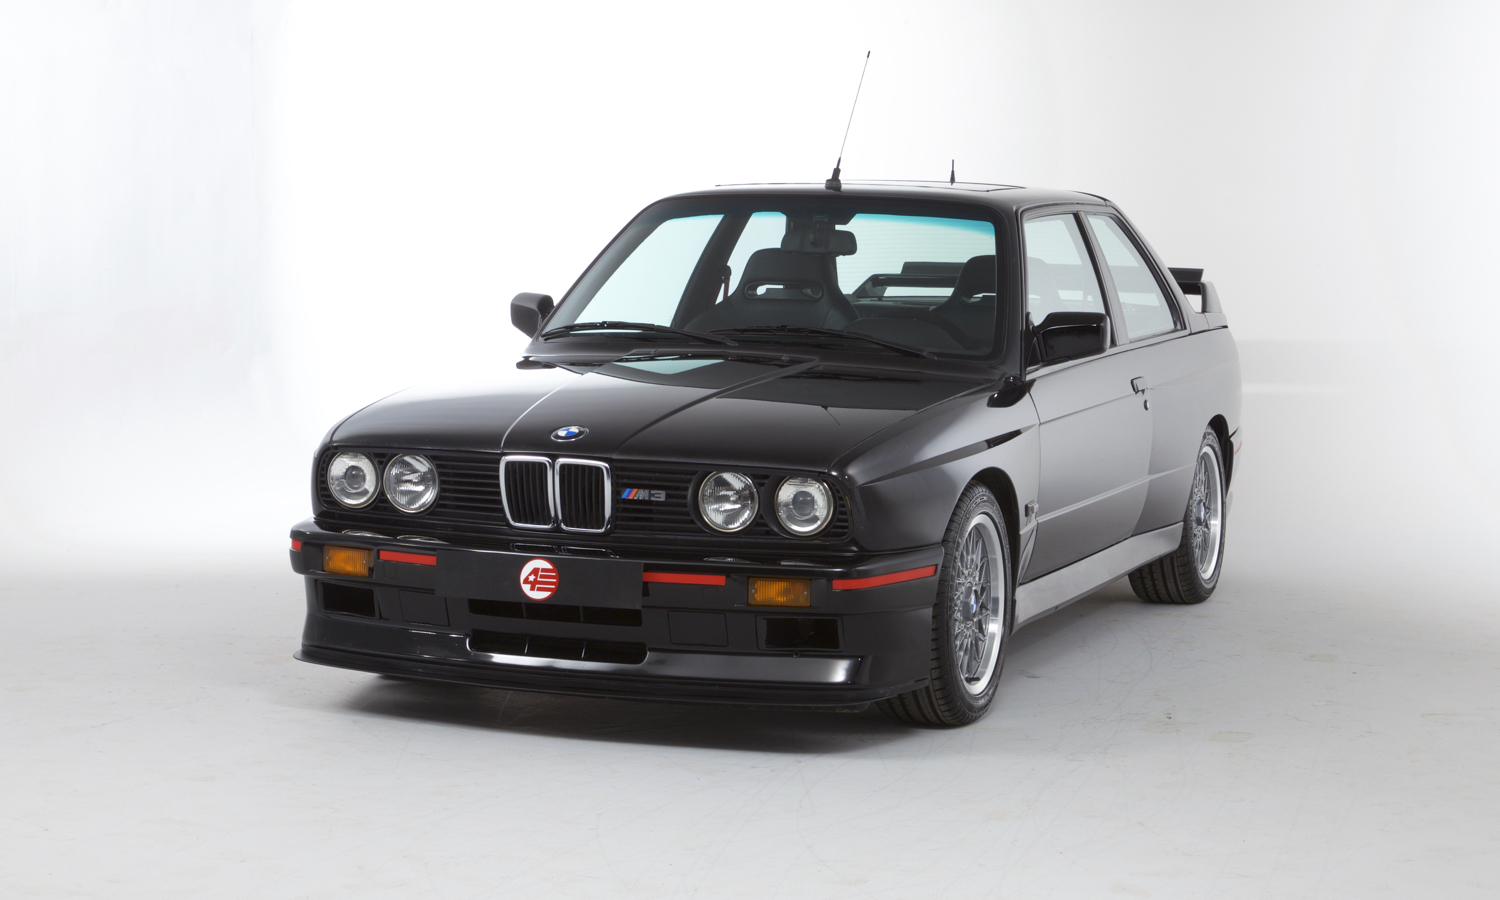 This E30 Bmw M3 Is On Sale For 120k And We Think Its Worth It